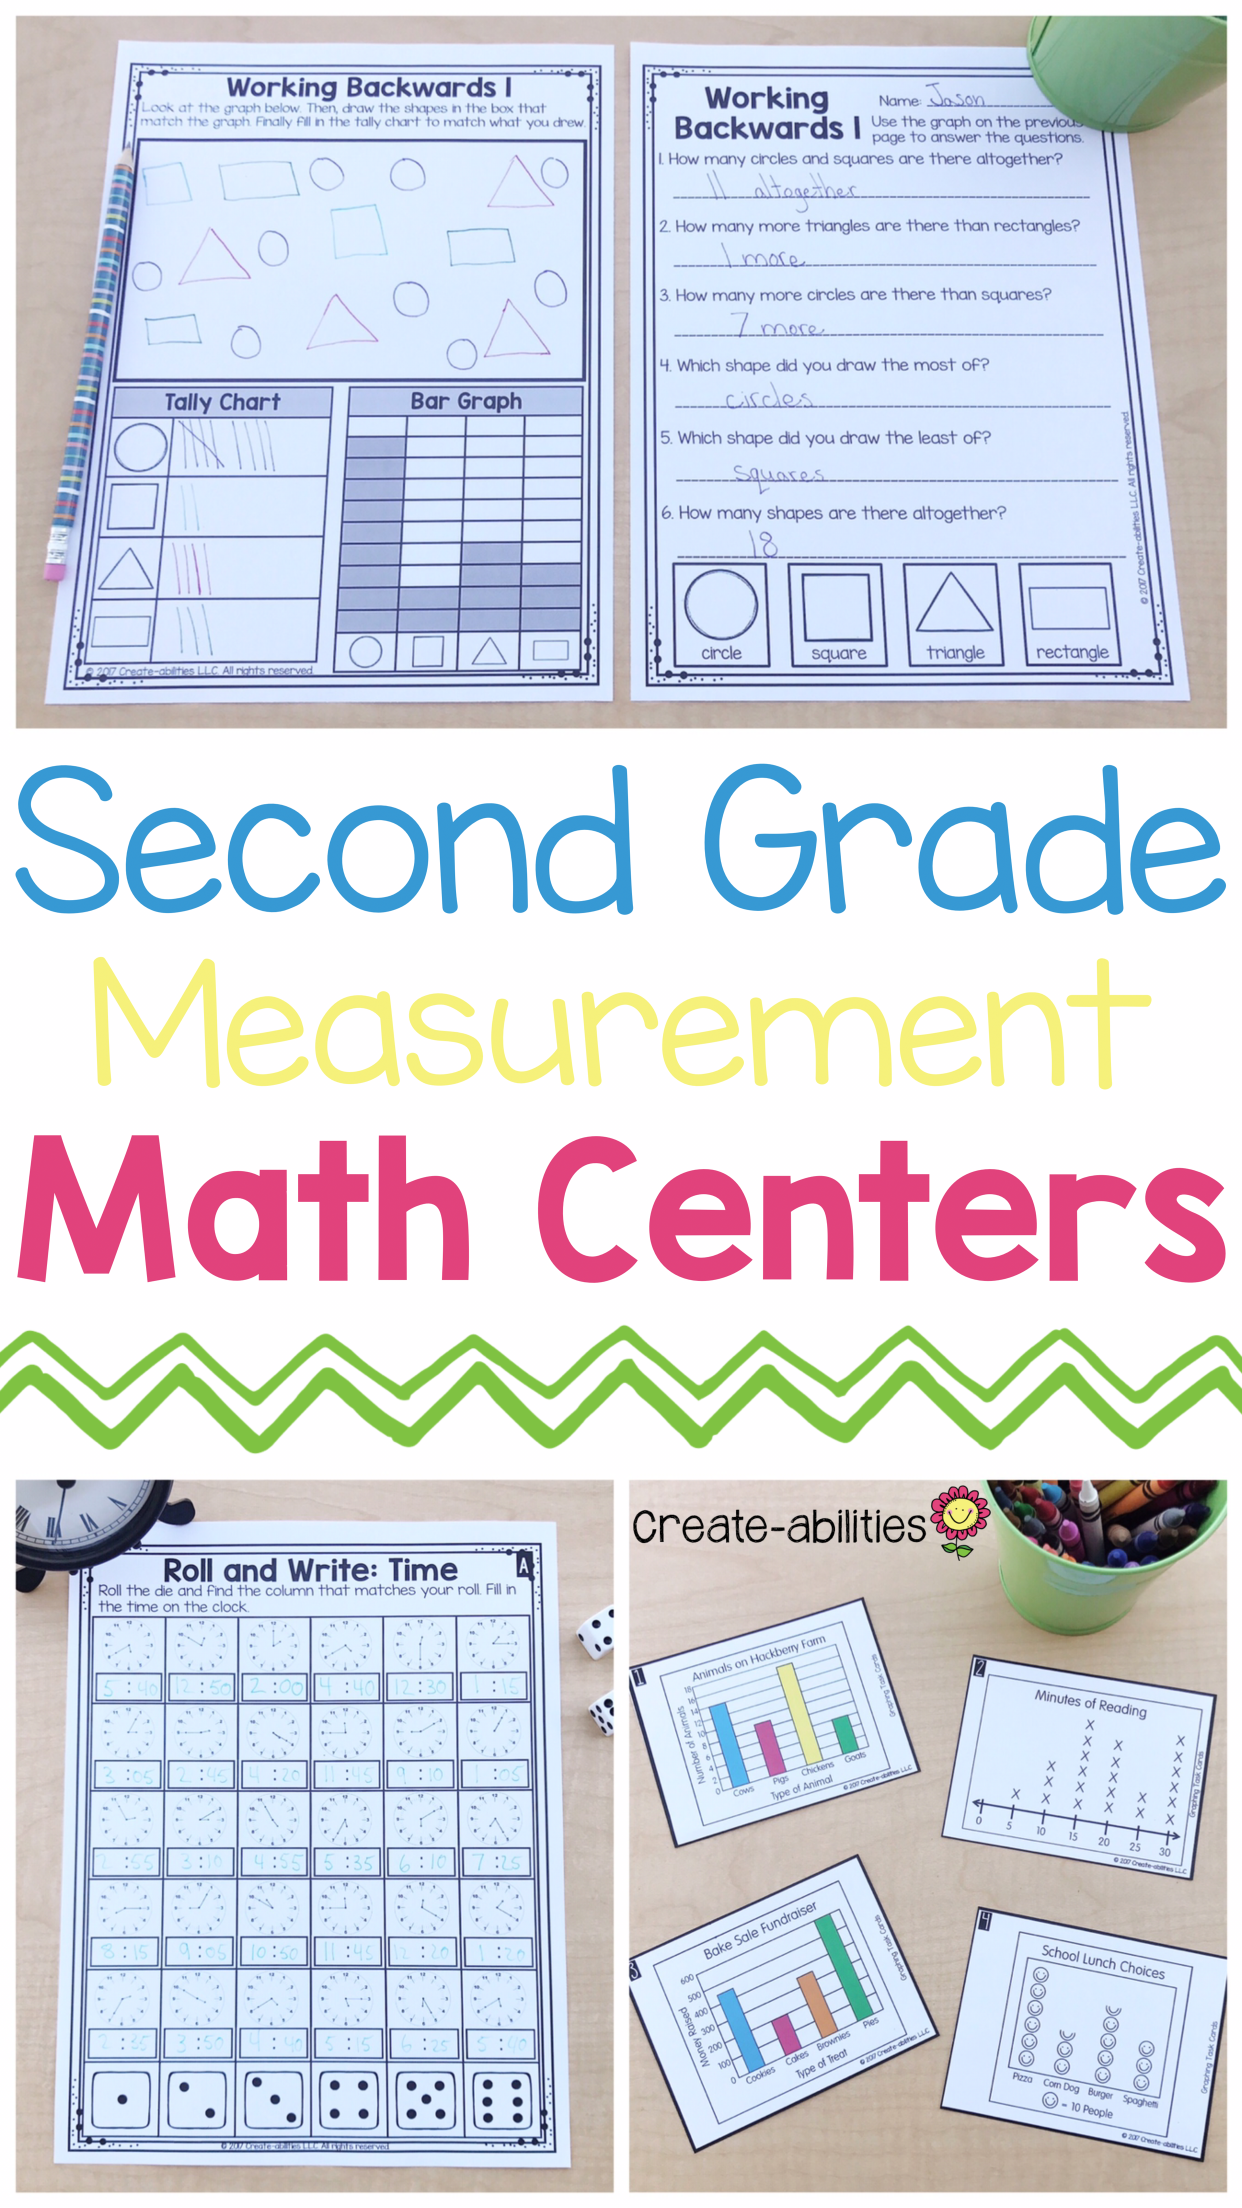 2nd Grade Measurement Math Centers